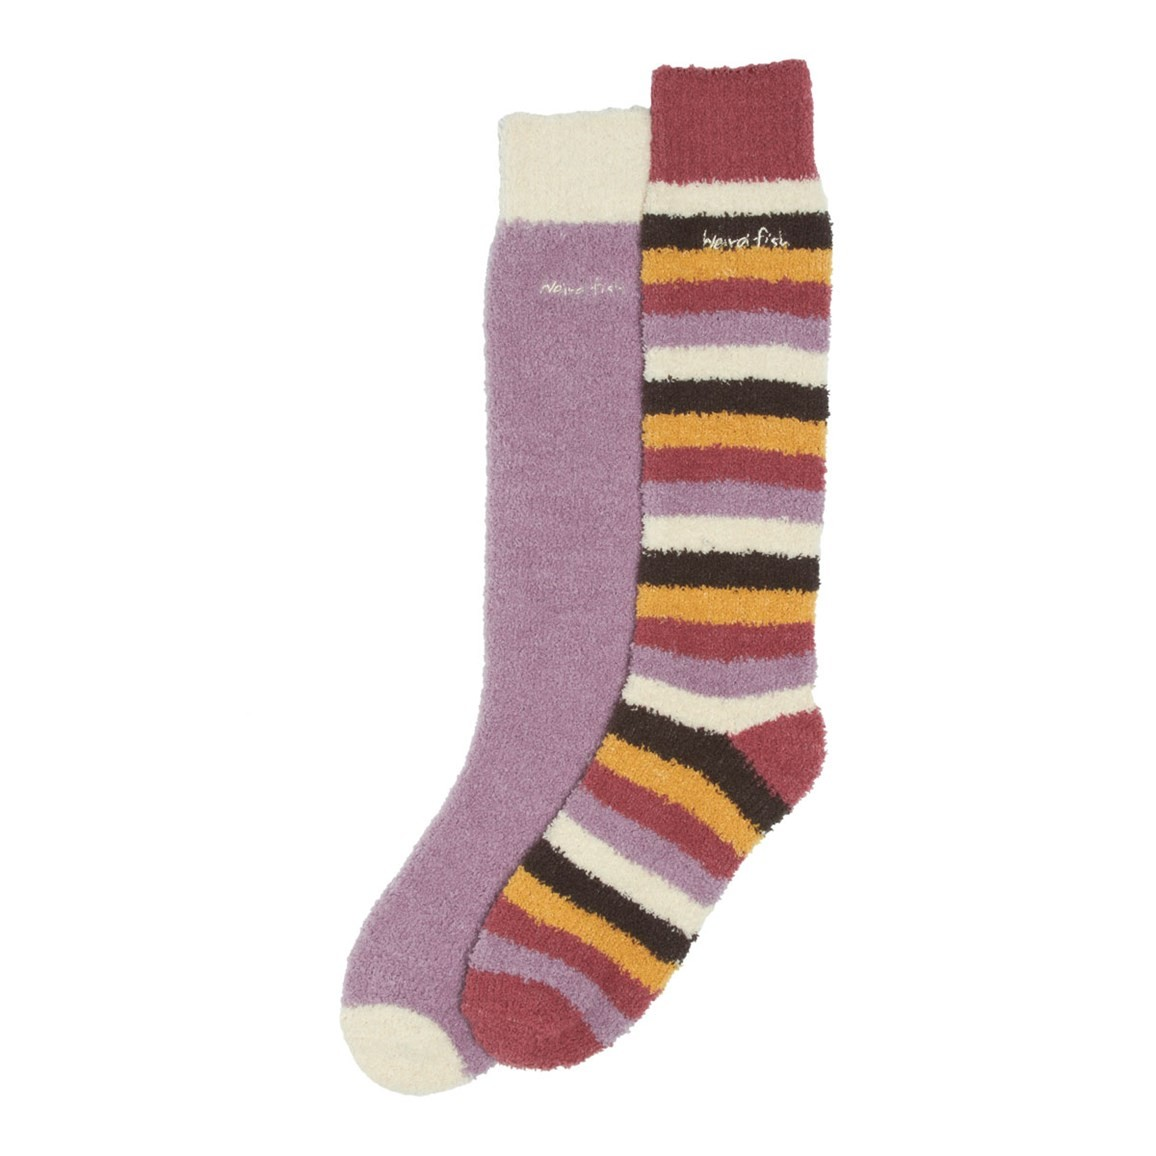 Weird Fish Park Fluffy Socks Pack of 2 Pairs Heather